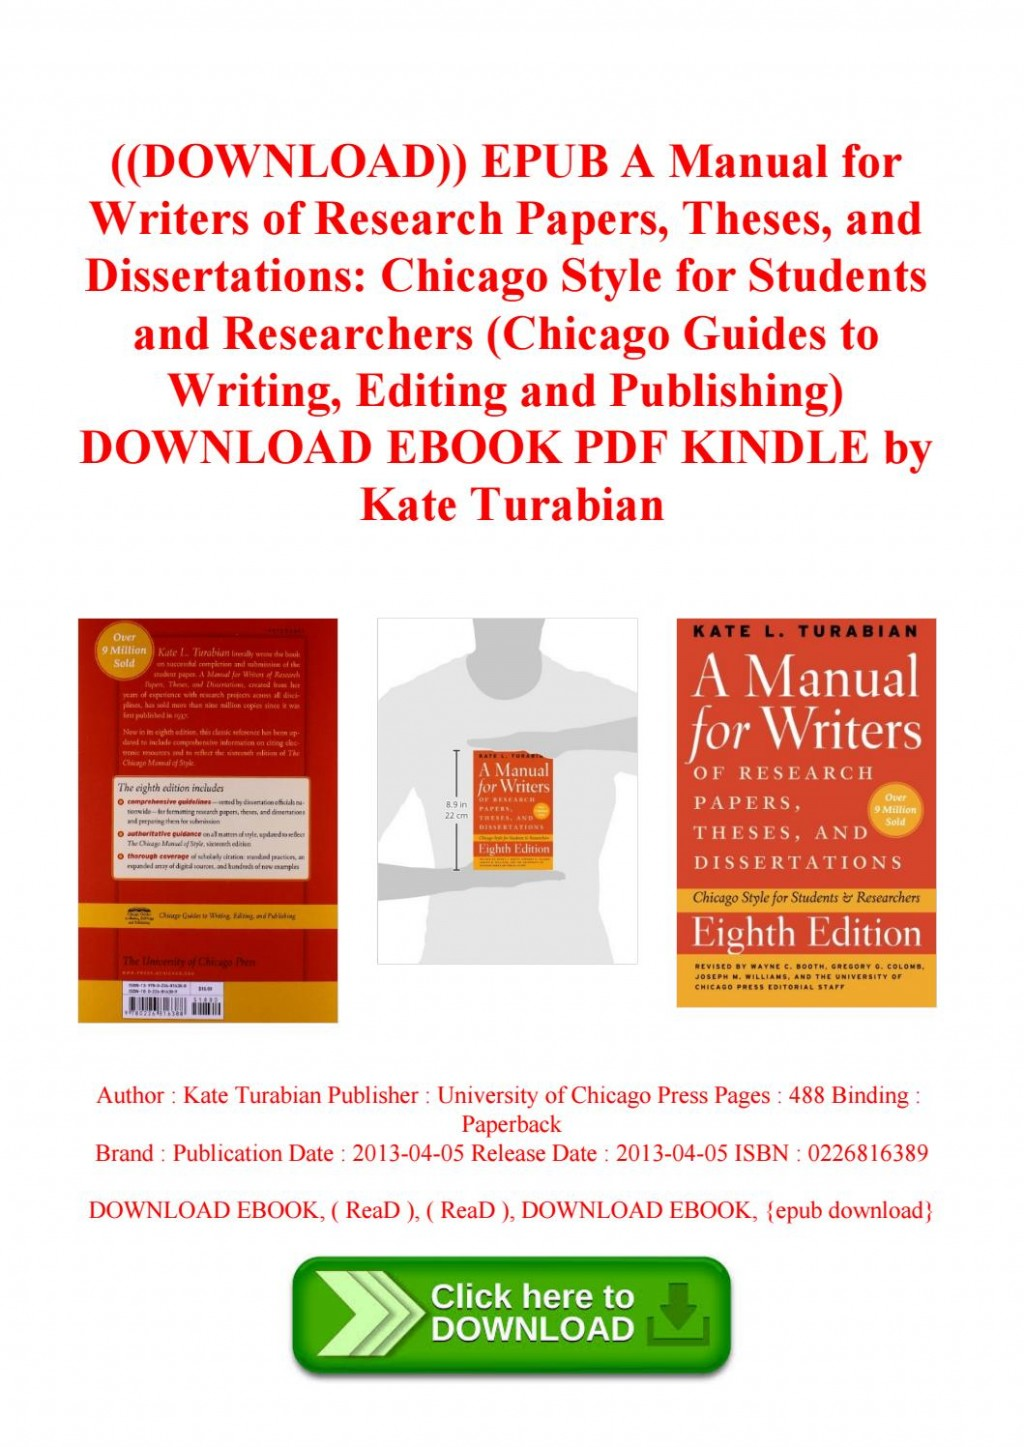 019 Page 1 Manual For Writers Of Researchs Theses And Dissertations Turabian Amazing A Research Papers Pdf Large